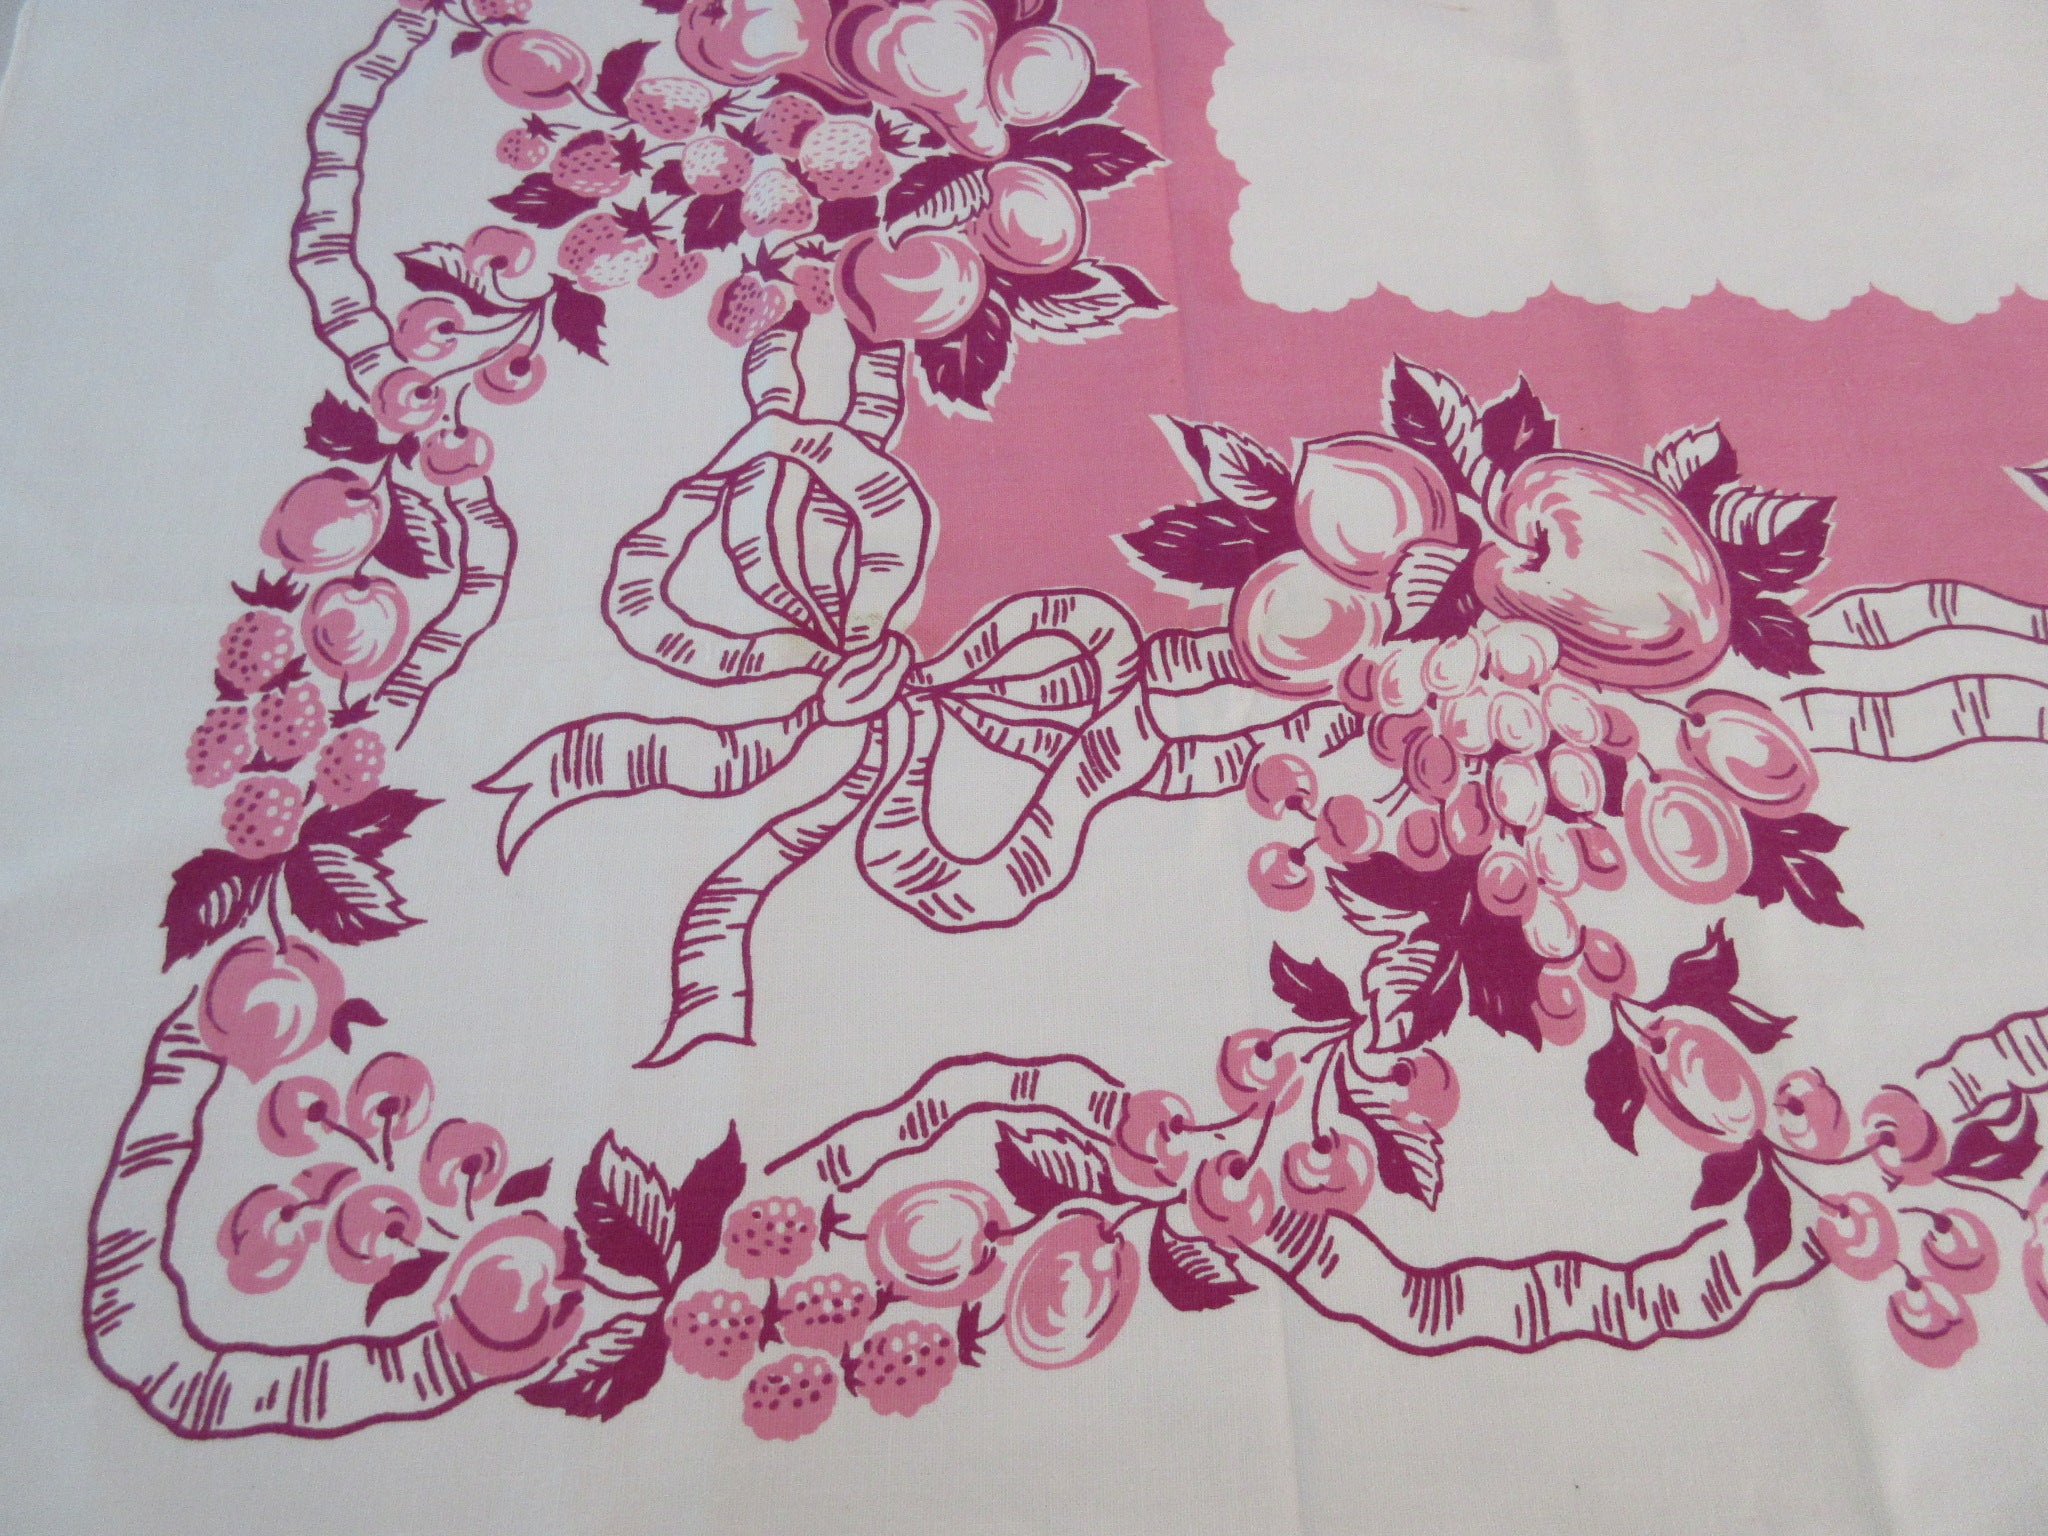 Fabulous Bright Pink Magenta Fruit Salad Vintage Printed Tablecloth (64 X 49)